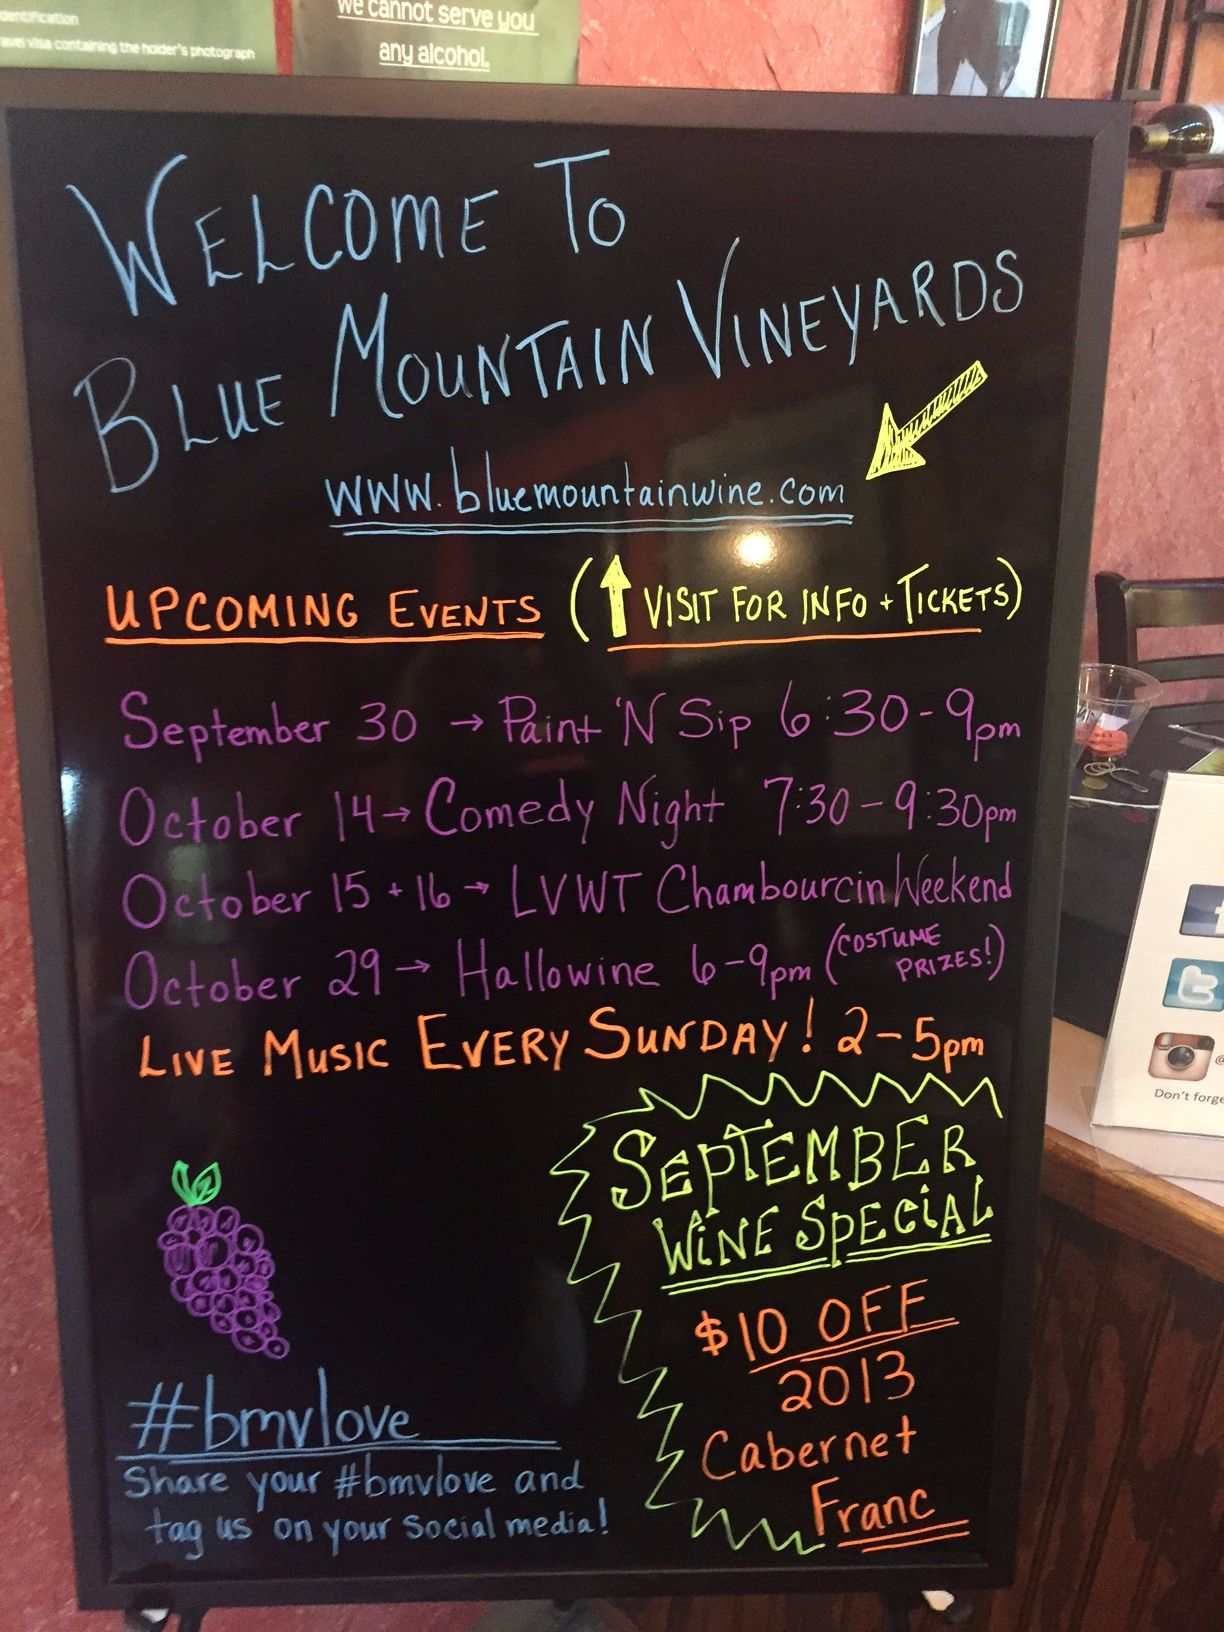 Blue Mountain Vineyard & Cellars Anniversary Party